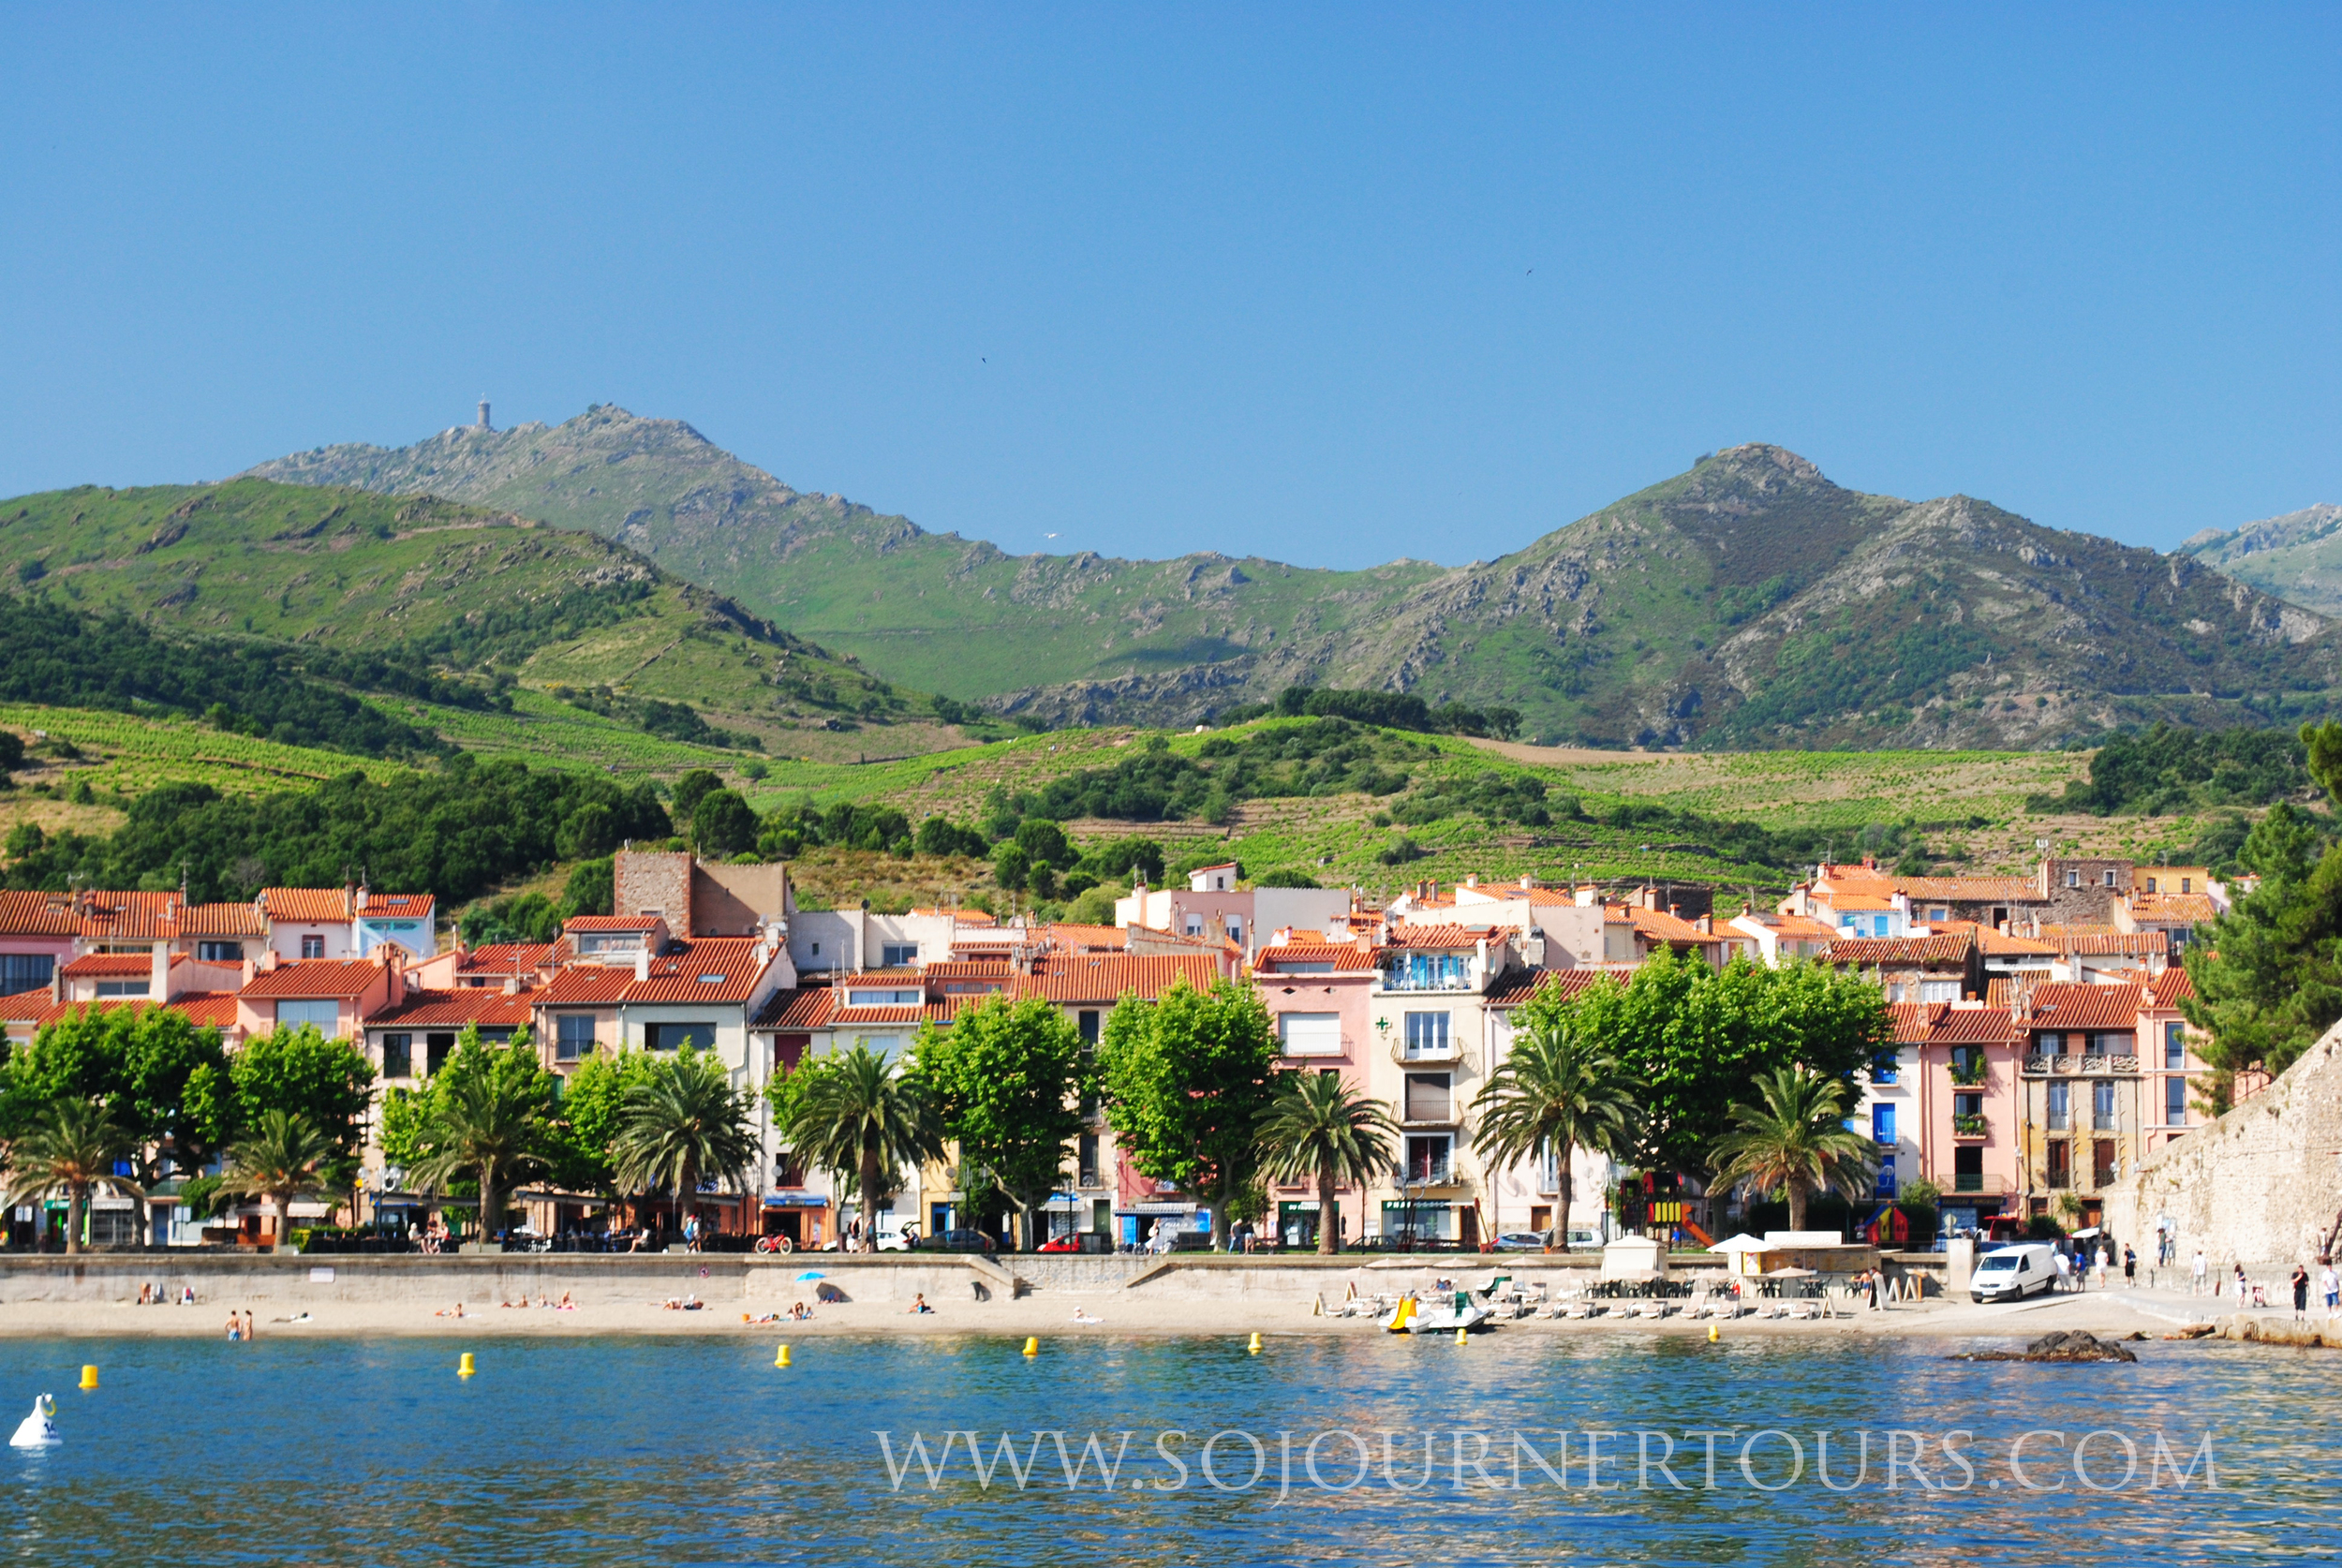 View of a residential section of Collioure.